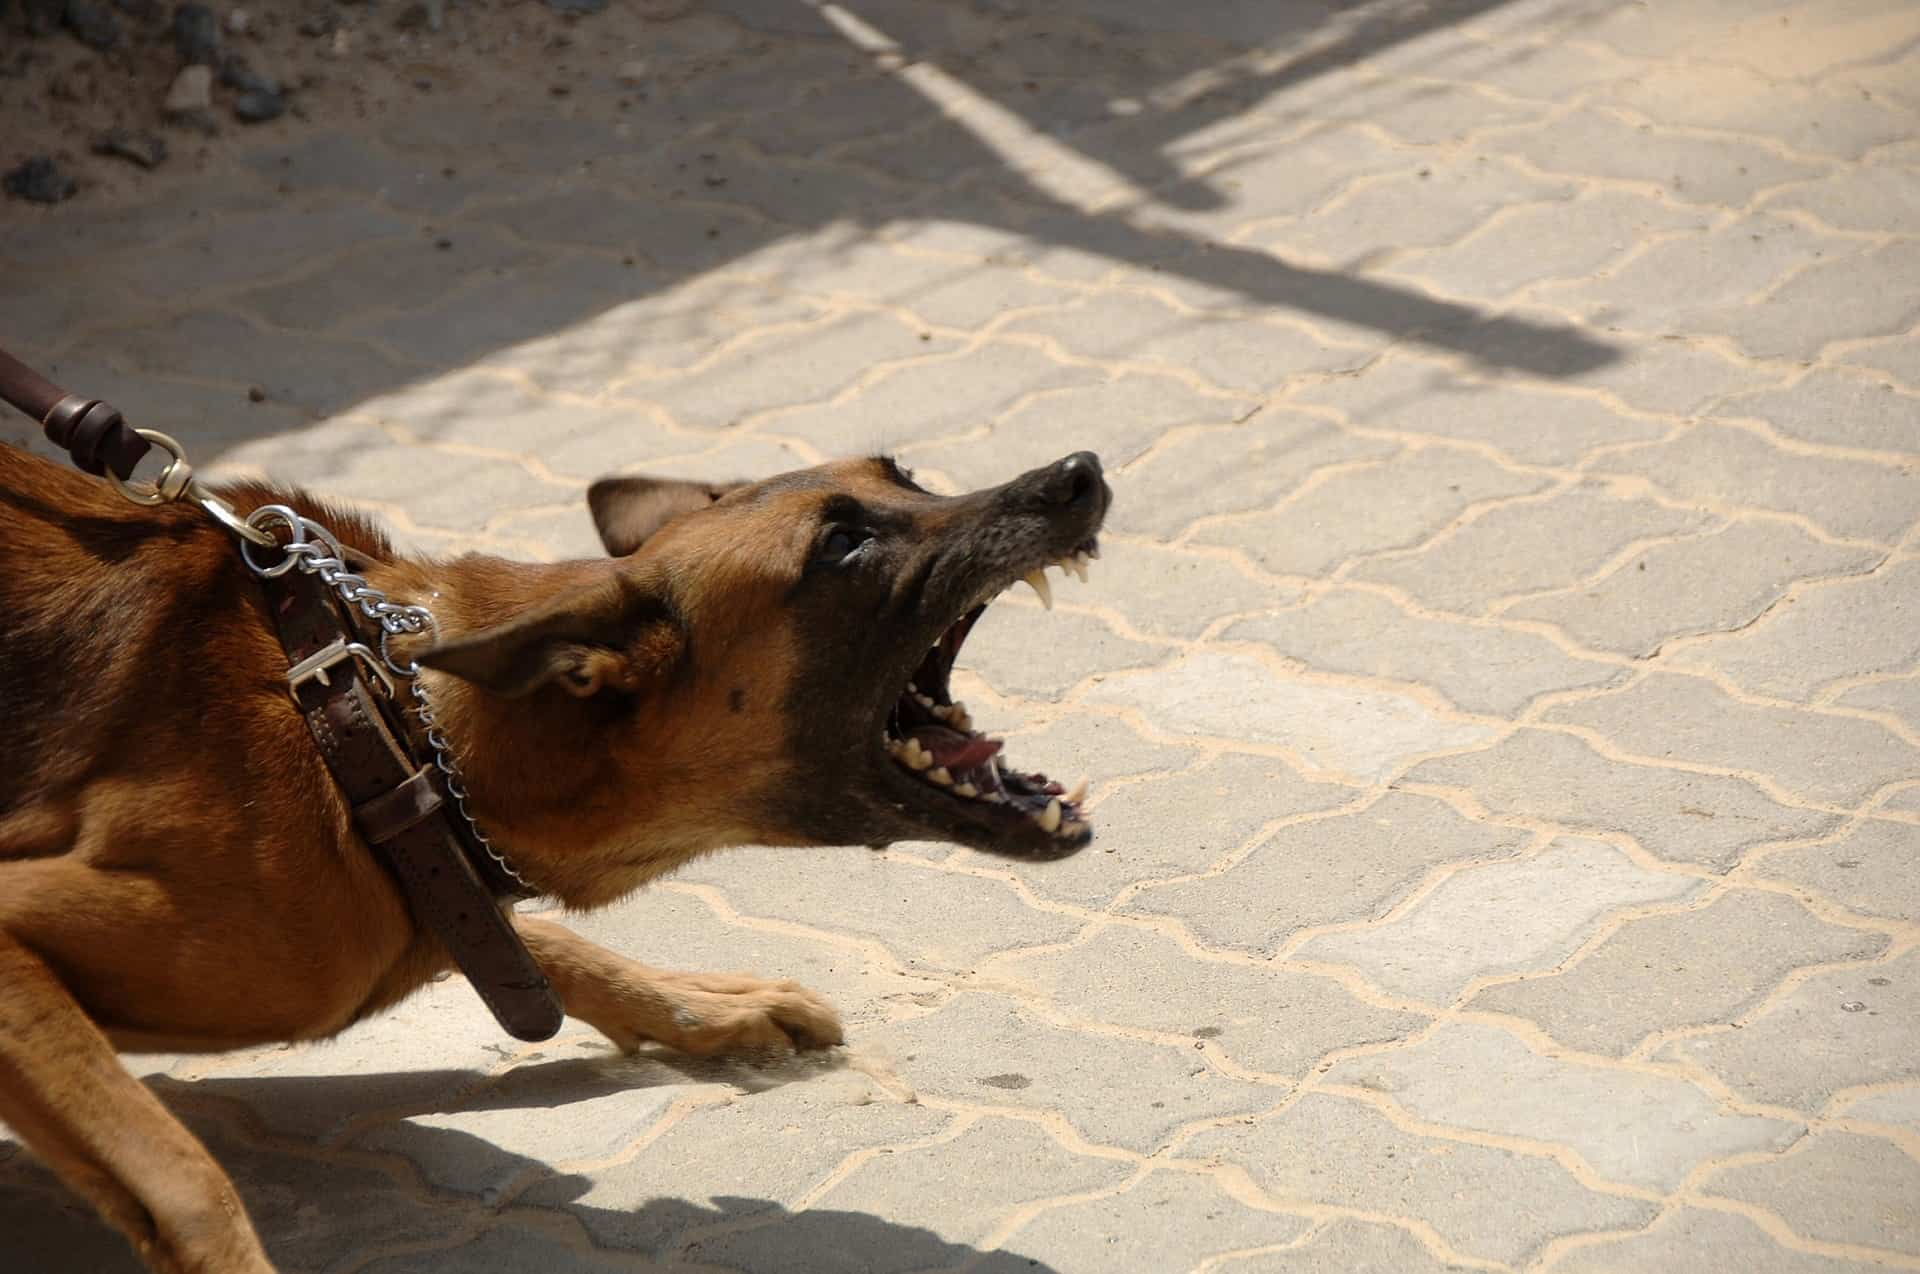 My Dog snarling is lunging and snapping at other dogs. A post from Reddit: